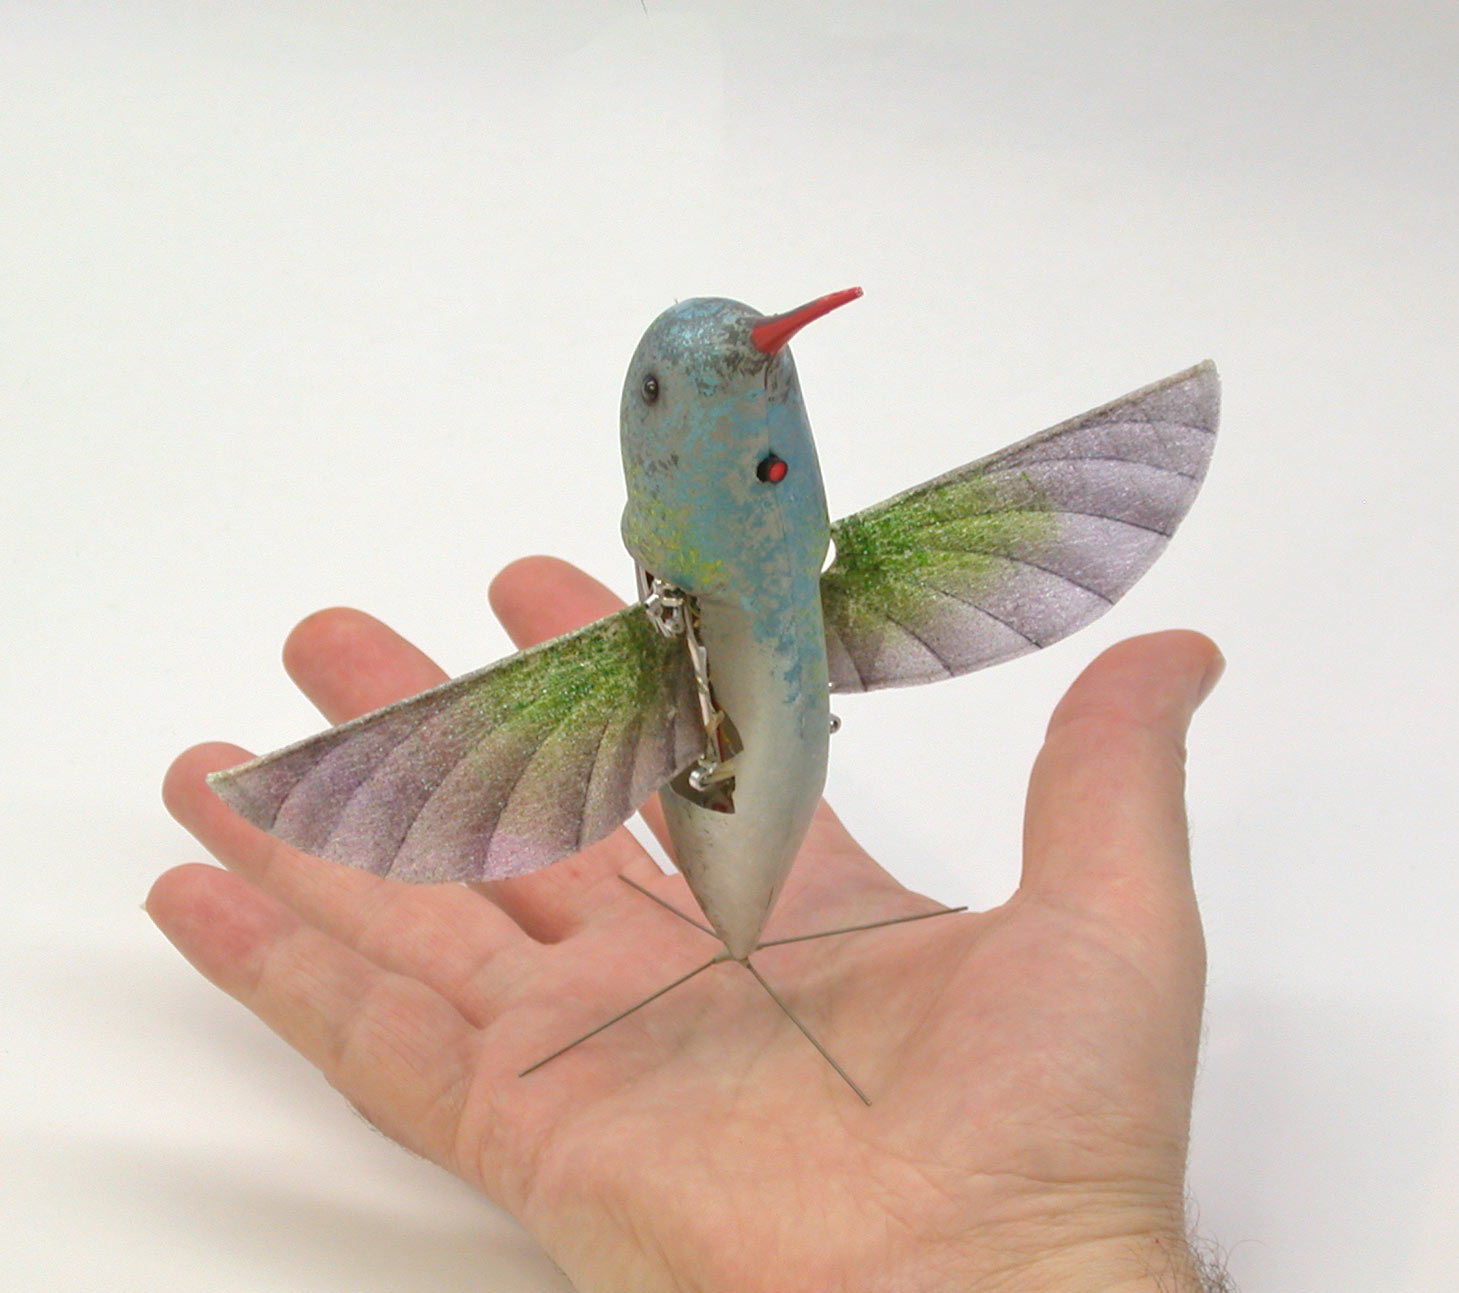 insect spy drone with 2011 02 Robot Hummingbird Flight Video on Heres What Future Insect Nano Drones Looks Video 1532592 as well 2011 02 Robot Hummingbird Flight Video as well Drone together with Ge ically Modified Dragonfly Drone together with 24.